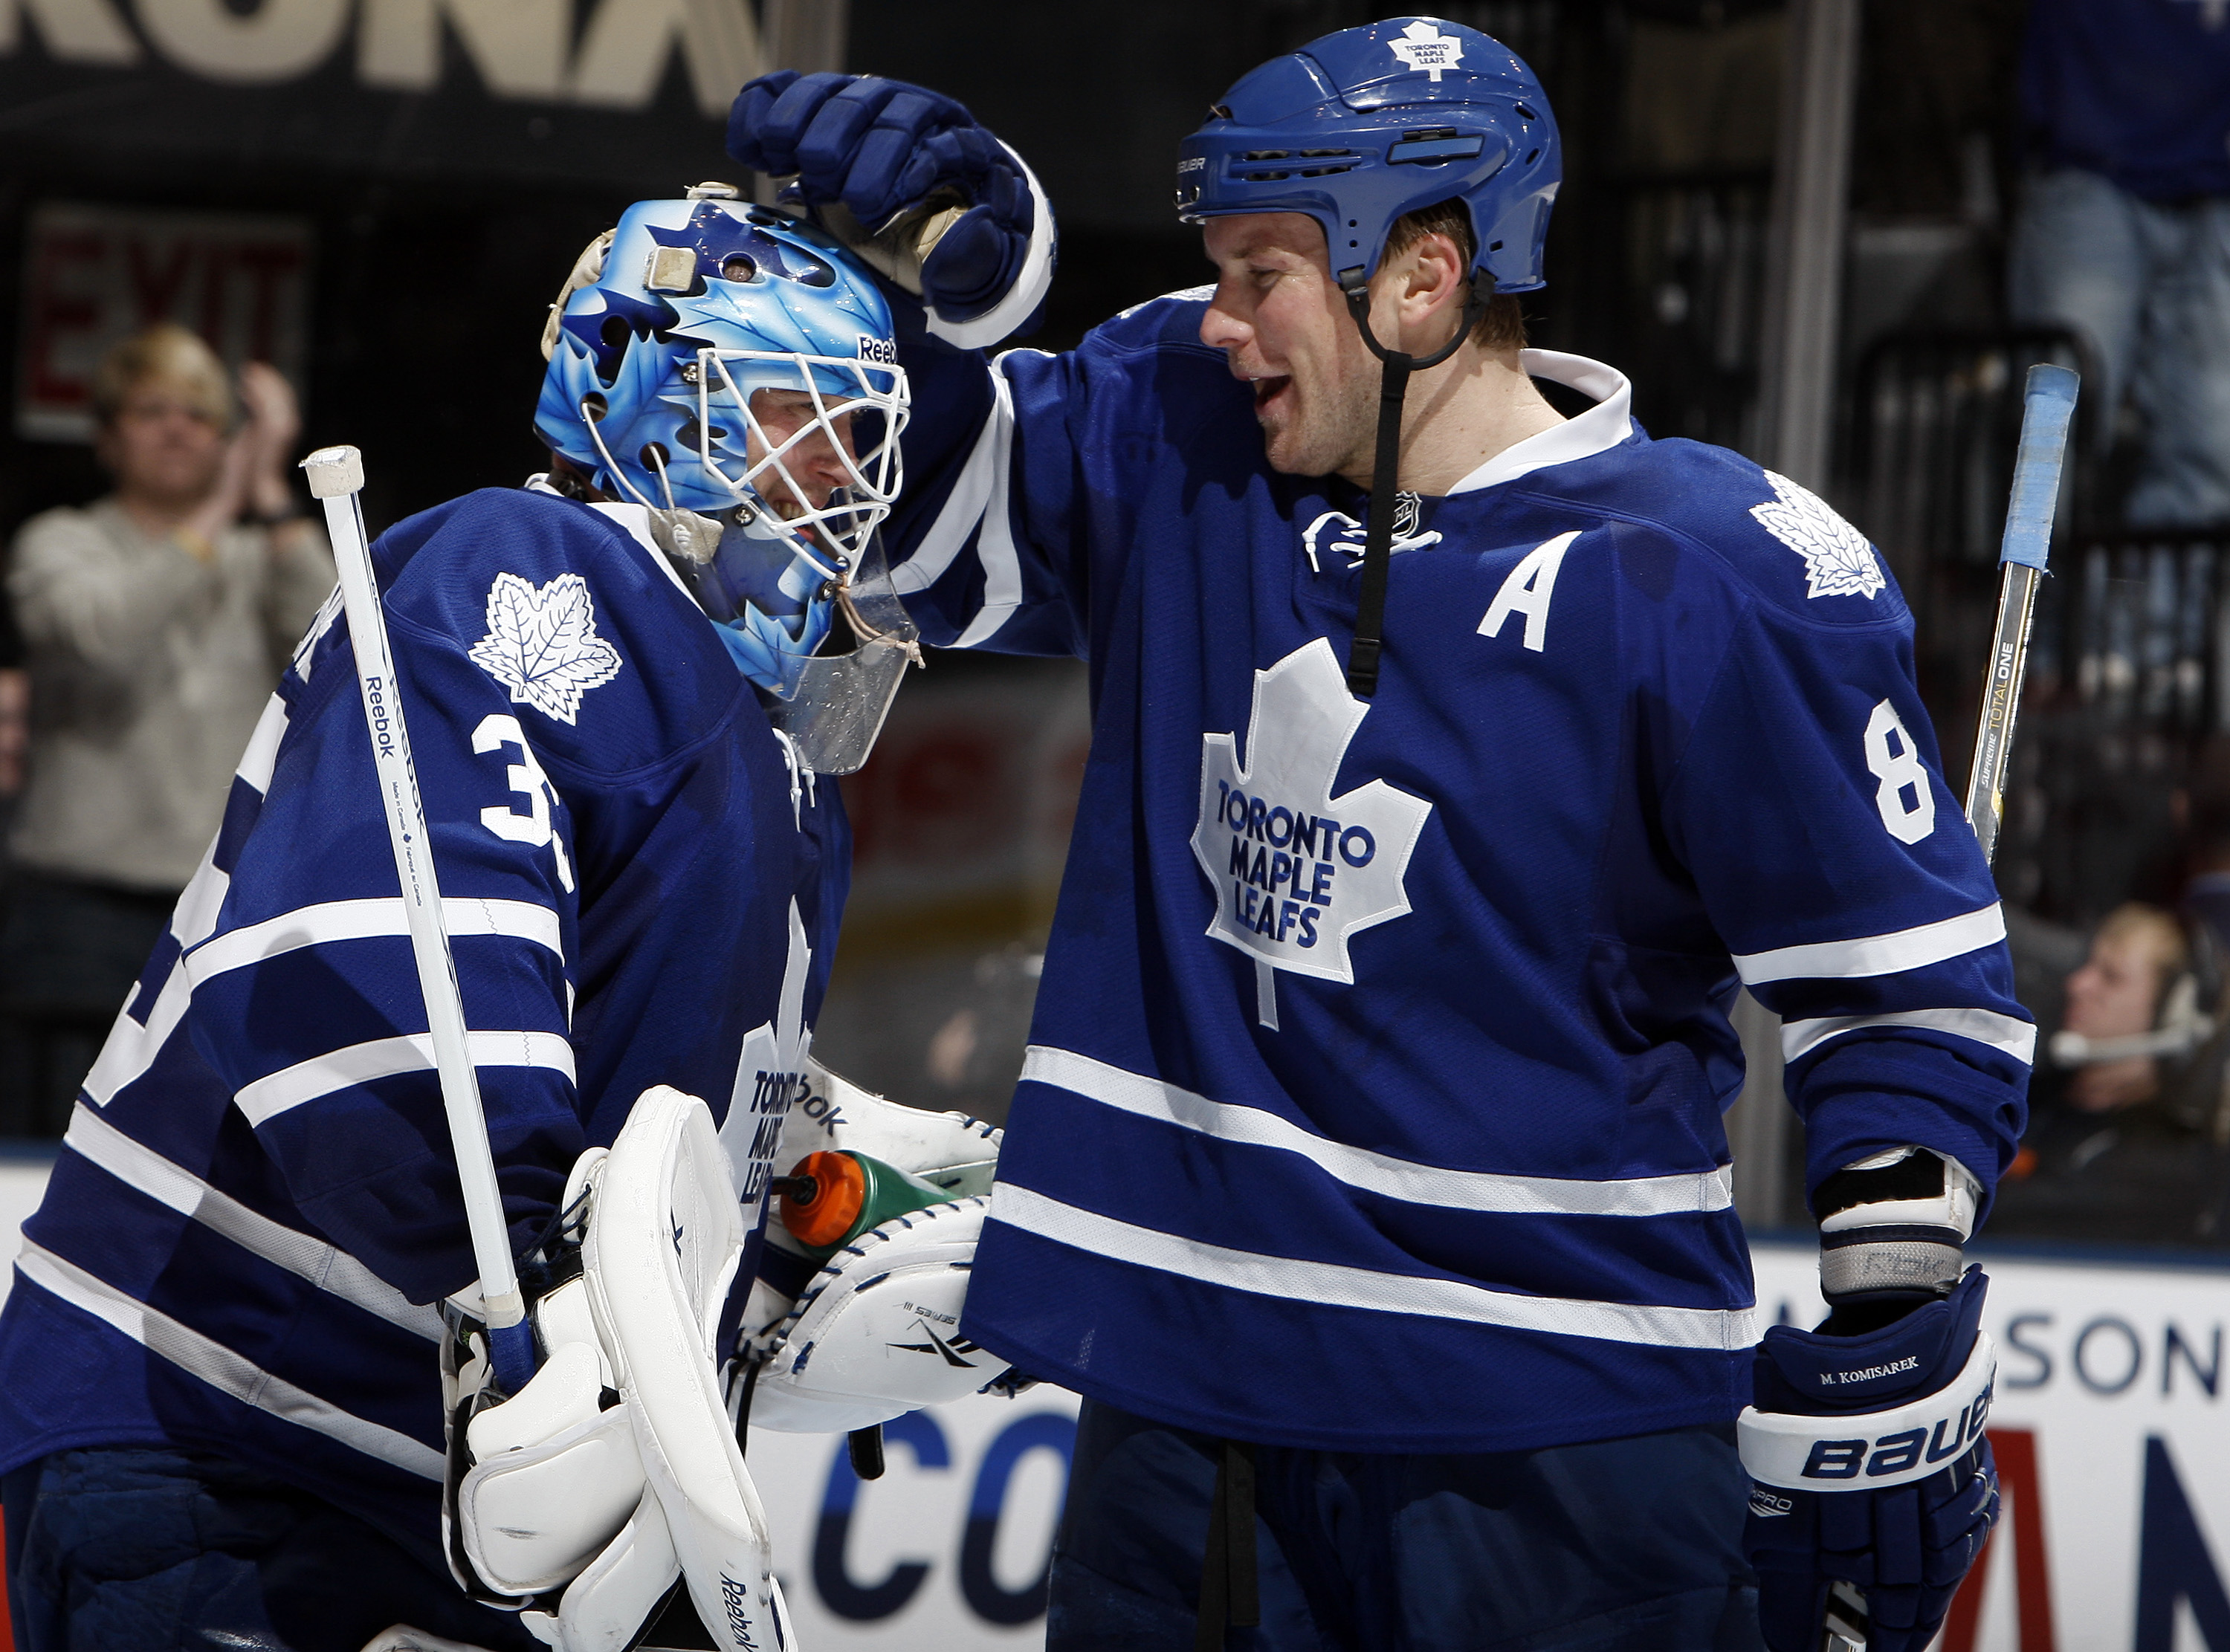 TORONTO, CANADA - FEBRUARY 1:  Jean-Sebastien Giguere #35 and Mike Komisarek #8 of the Toronto Maple Leafs celebrate after stopping Christopher Higgins of the Florida Panthers to win the shootout at the Air Canada Centre February 1, 2011 in Toronto, Ontar